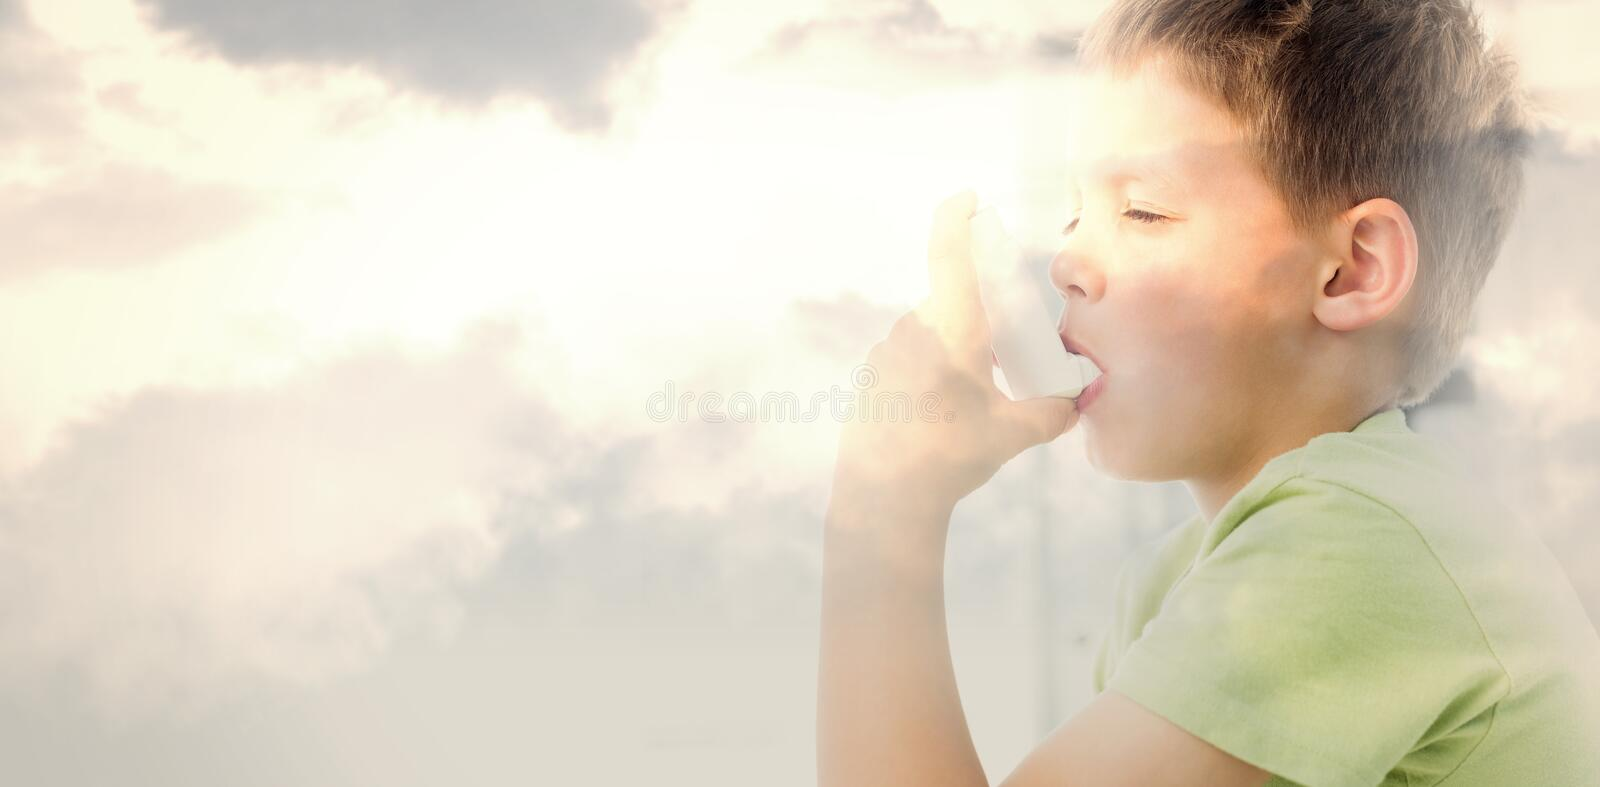 Composite image of boy using an asthma inhaler in clinic royalty free stock image